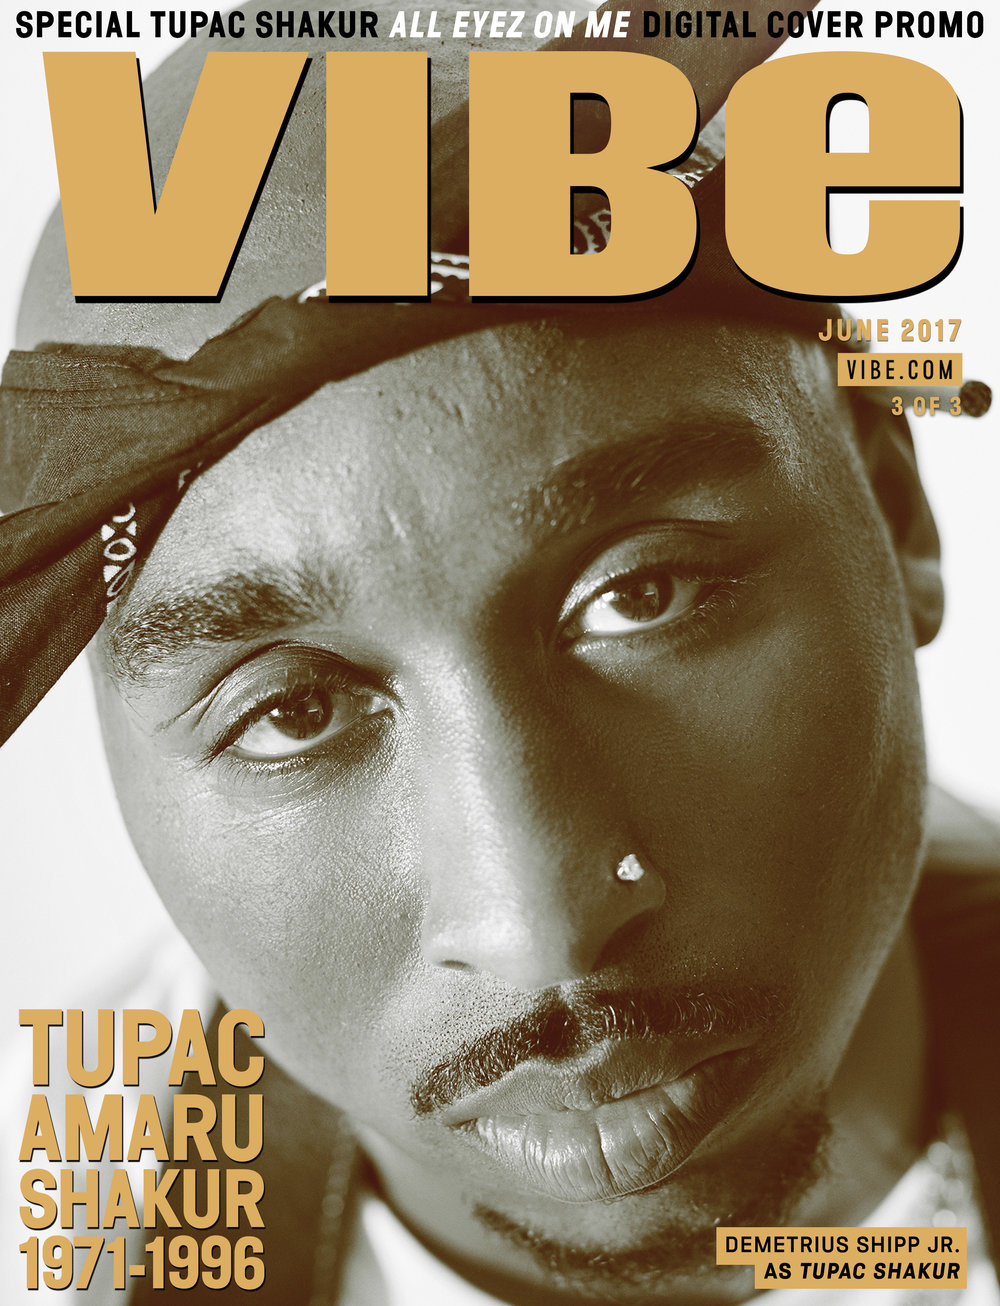 VIBE-CoverTupac_3of3[1].jpg